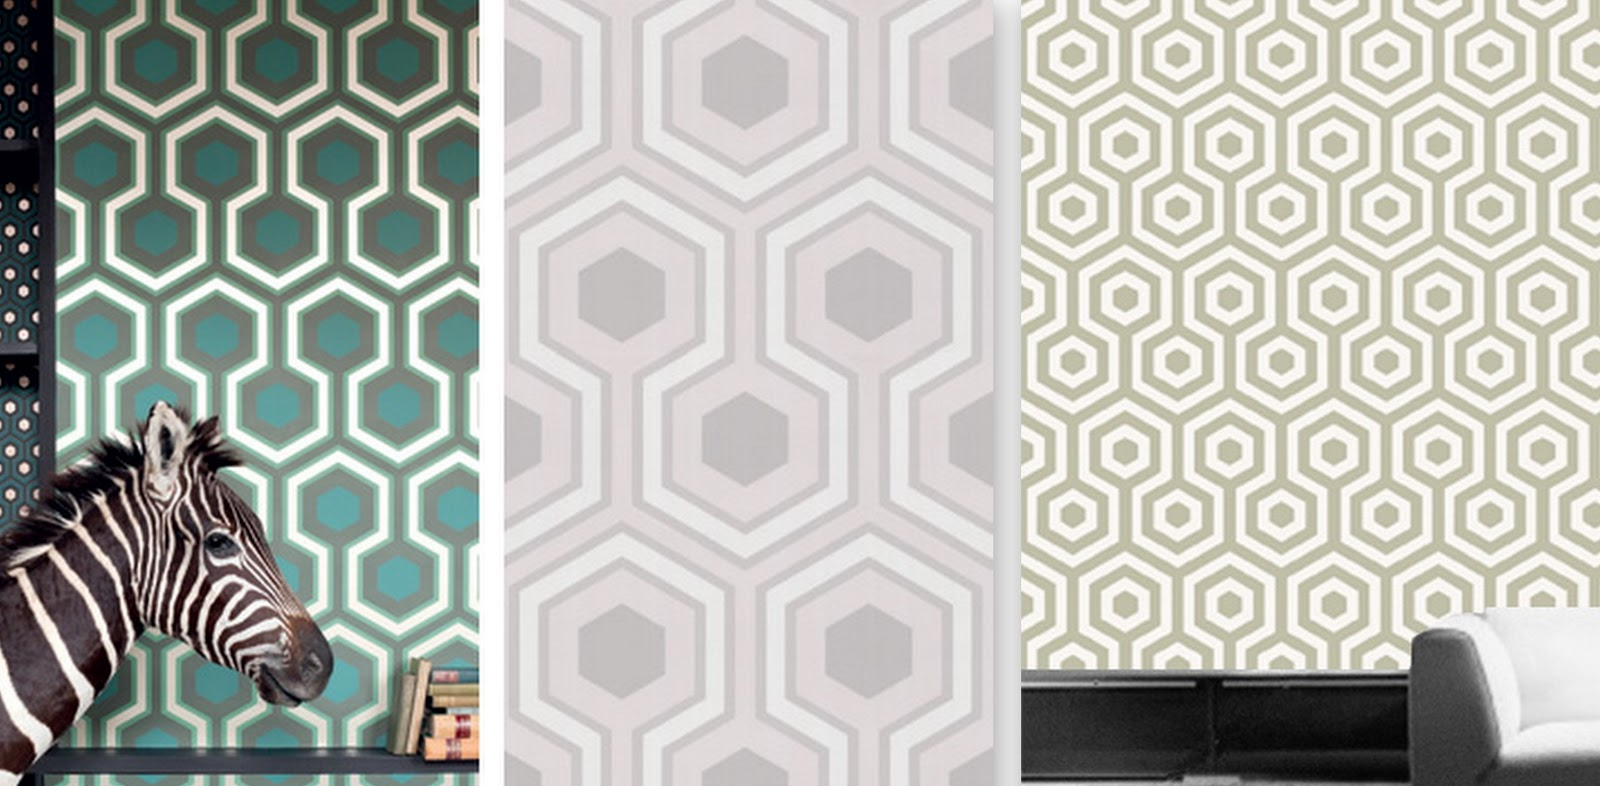 Chelsea lane co may 2013 for Papel pintado ka internacional